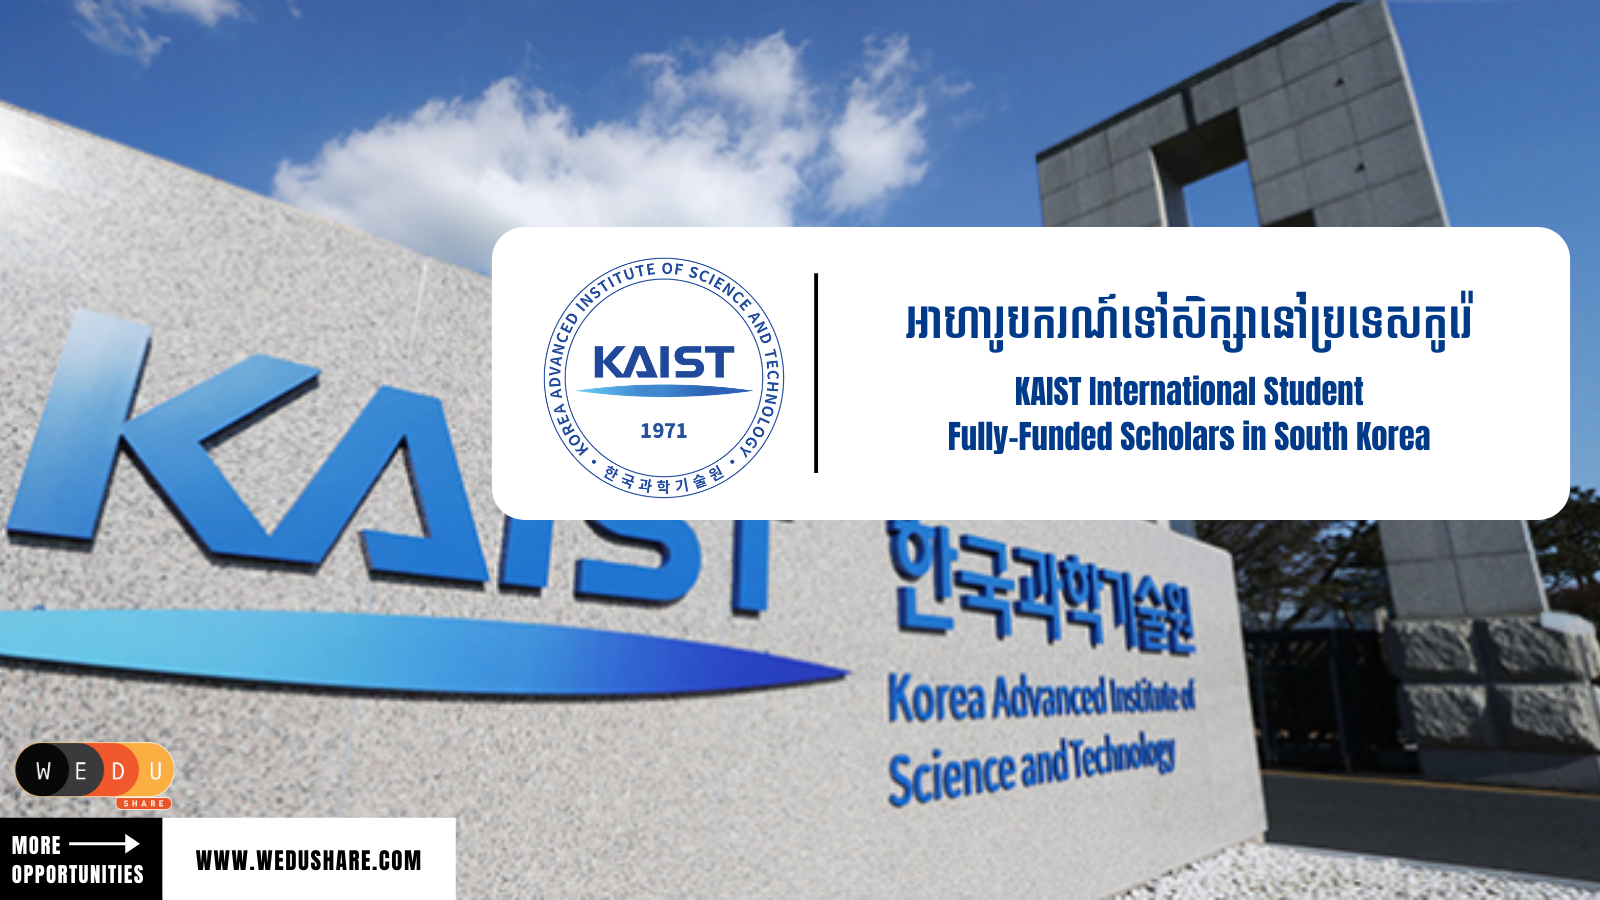 KAIST International Student Fully-Funded Scholars in South Korea